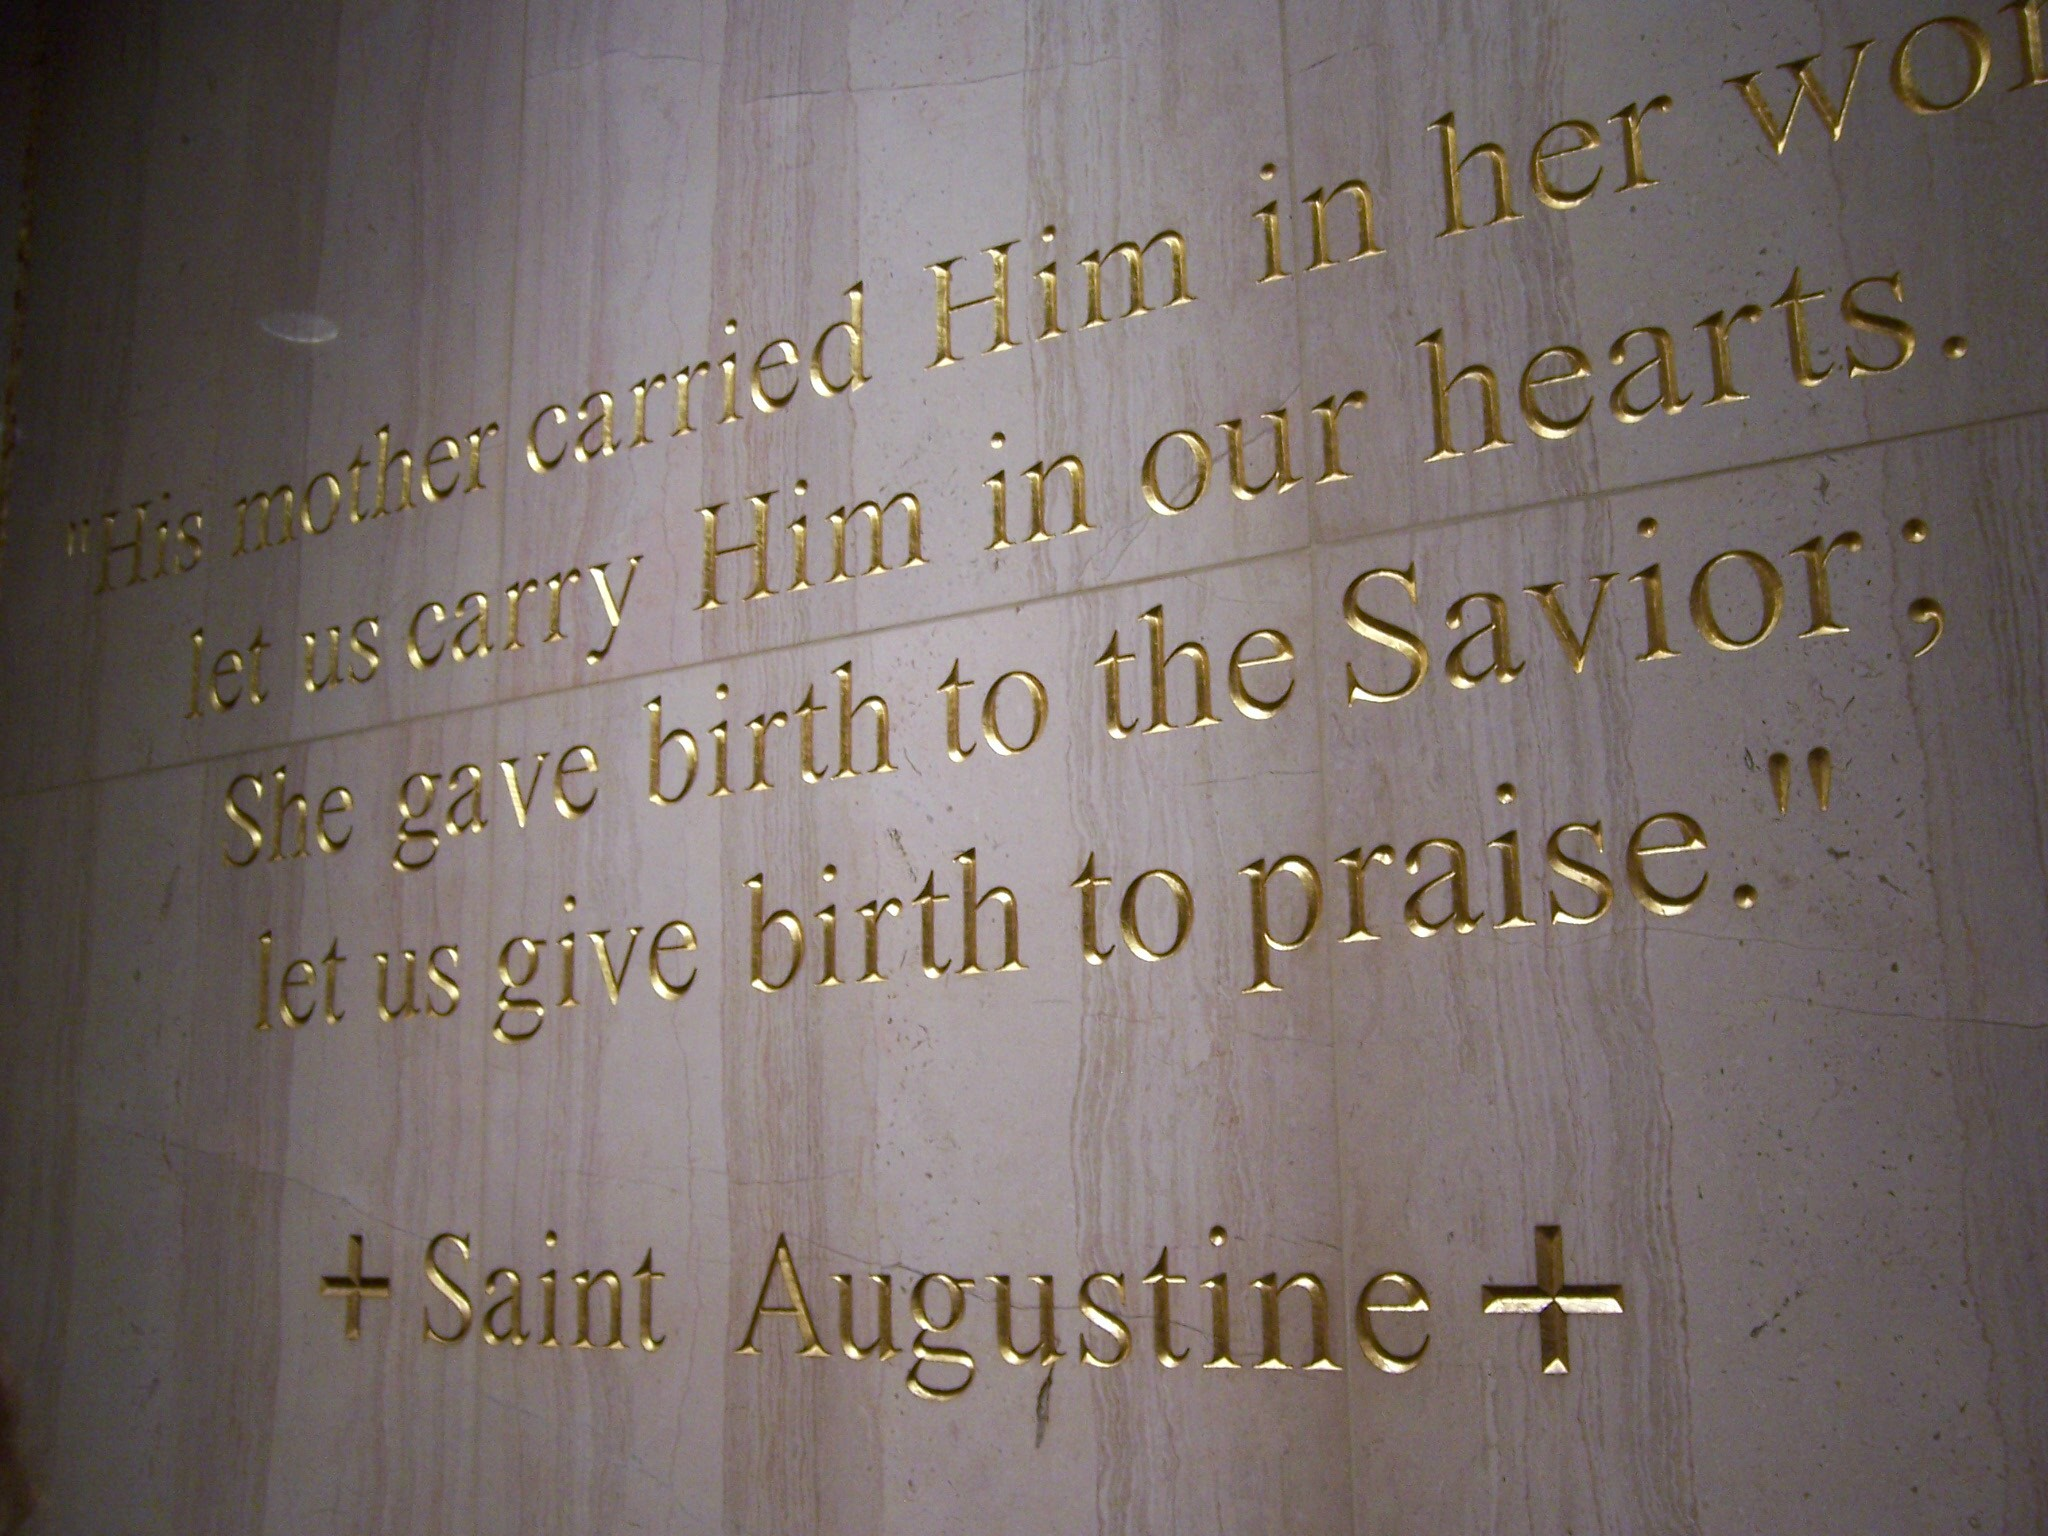 augustine of hippo Augustine is still acclaimed and condemned in our day he is a prophet for today, trumpeting the need to scrap escapisms and stand face-to-face with personal responsibility and dignity saint augustine is the patron saint of:.